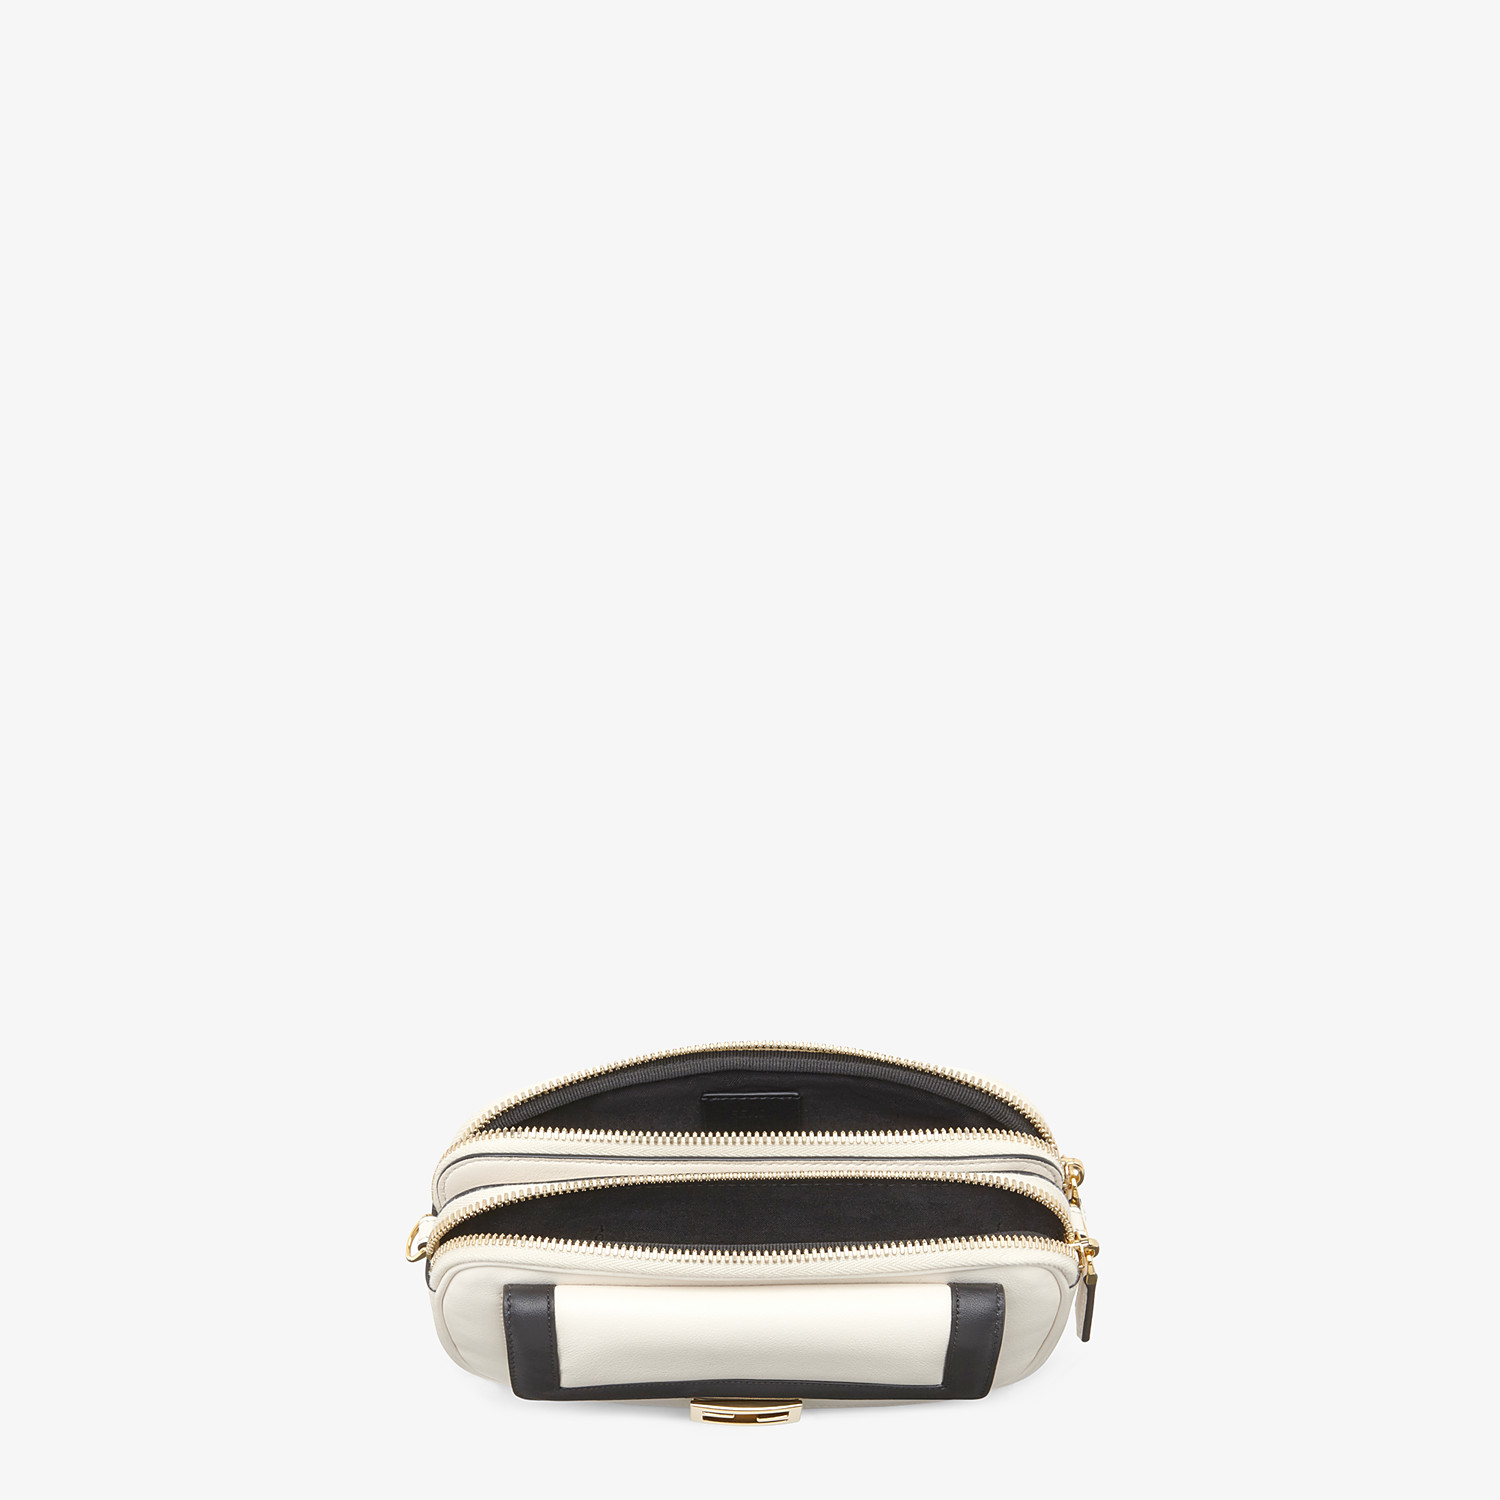 FENDI EASY 2 BAGUETTE - White leather mini bag - view 5 detail